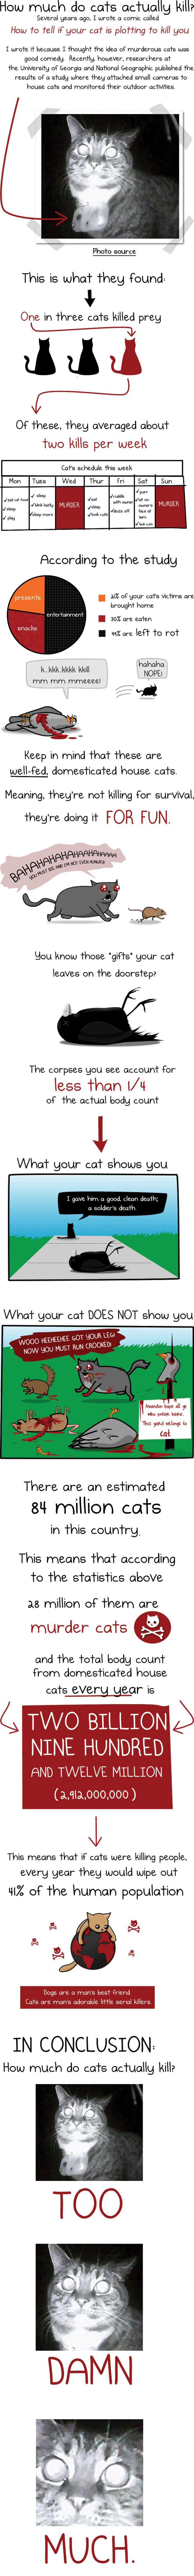 Cats Love Murder-Infographic